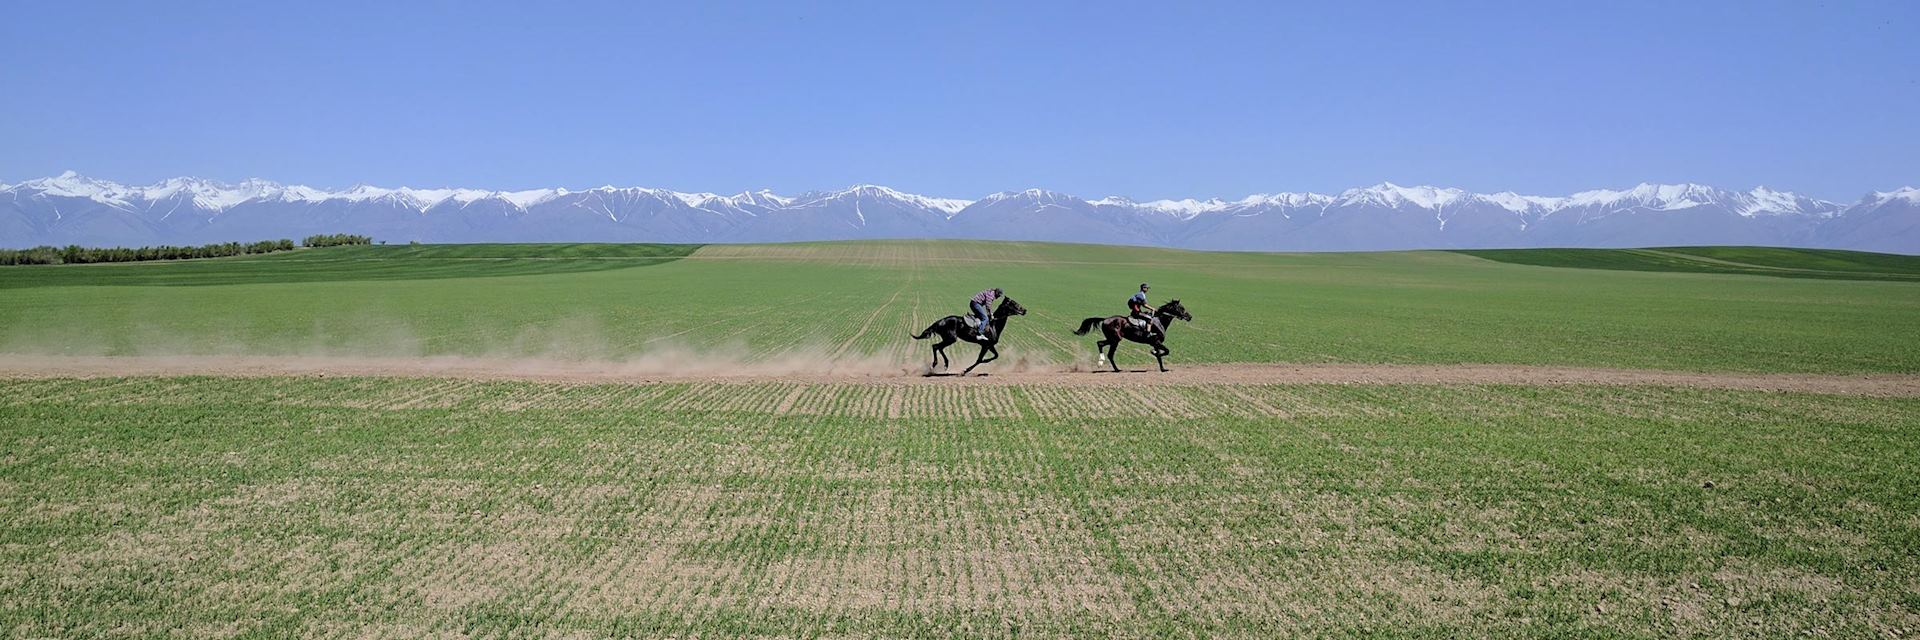 Horse riding in Issyk Kul